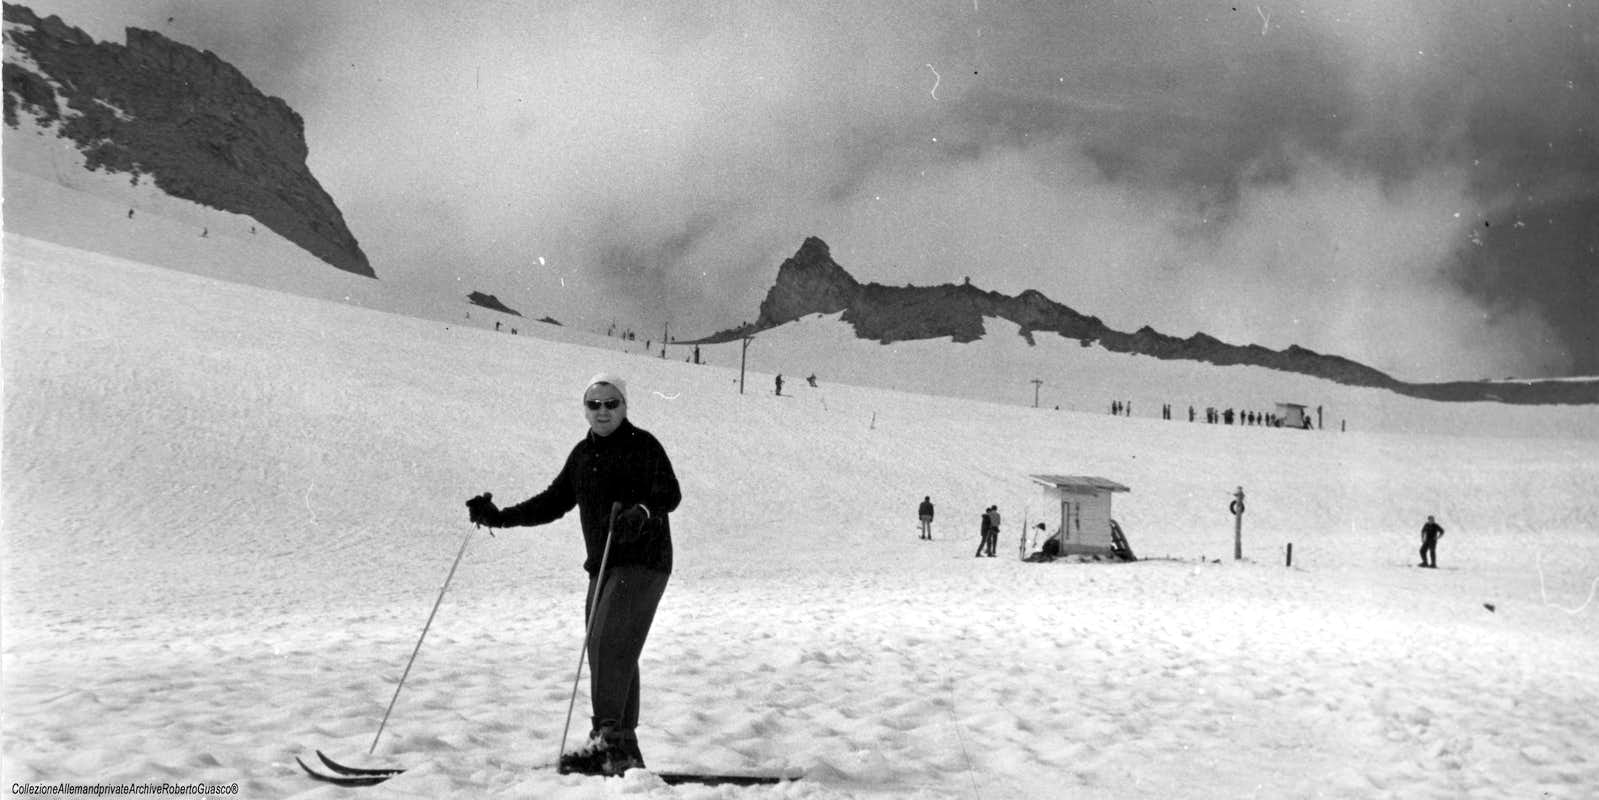 Skiing on the Glacier 1963